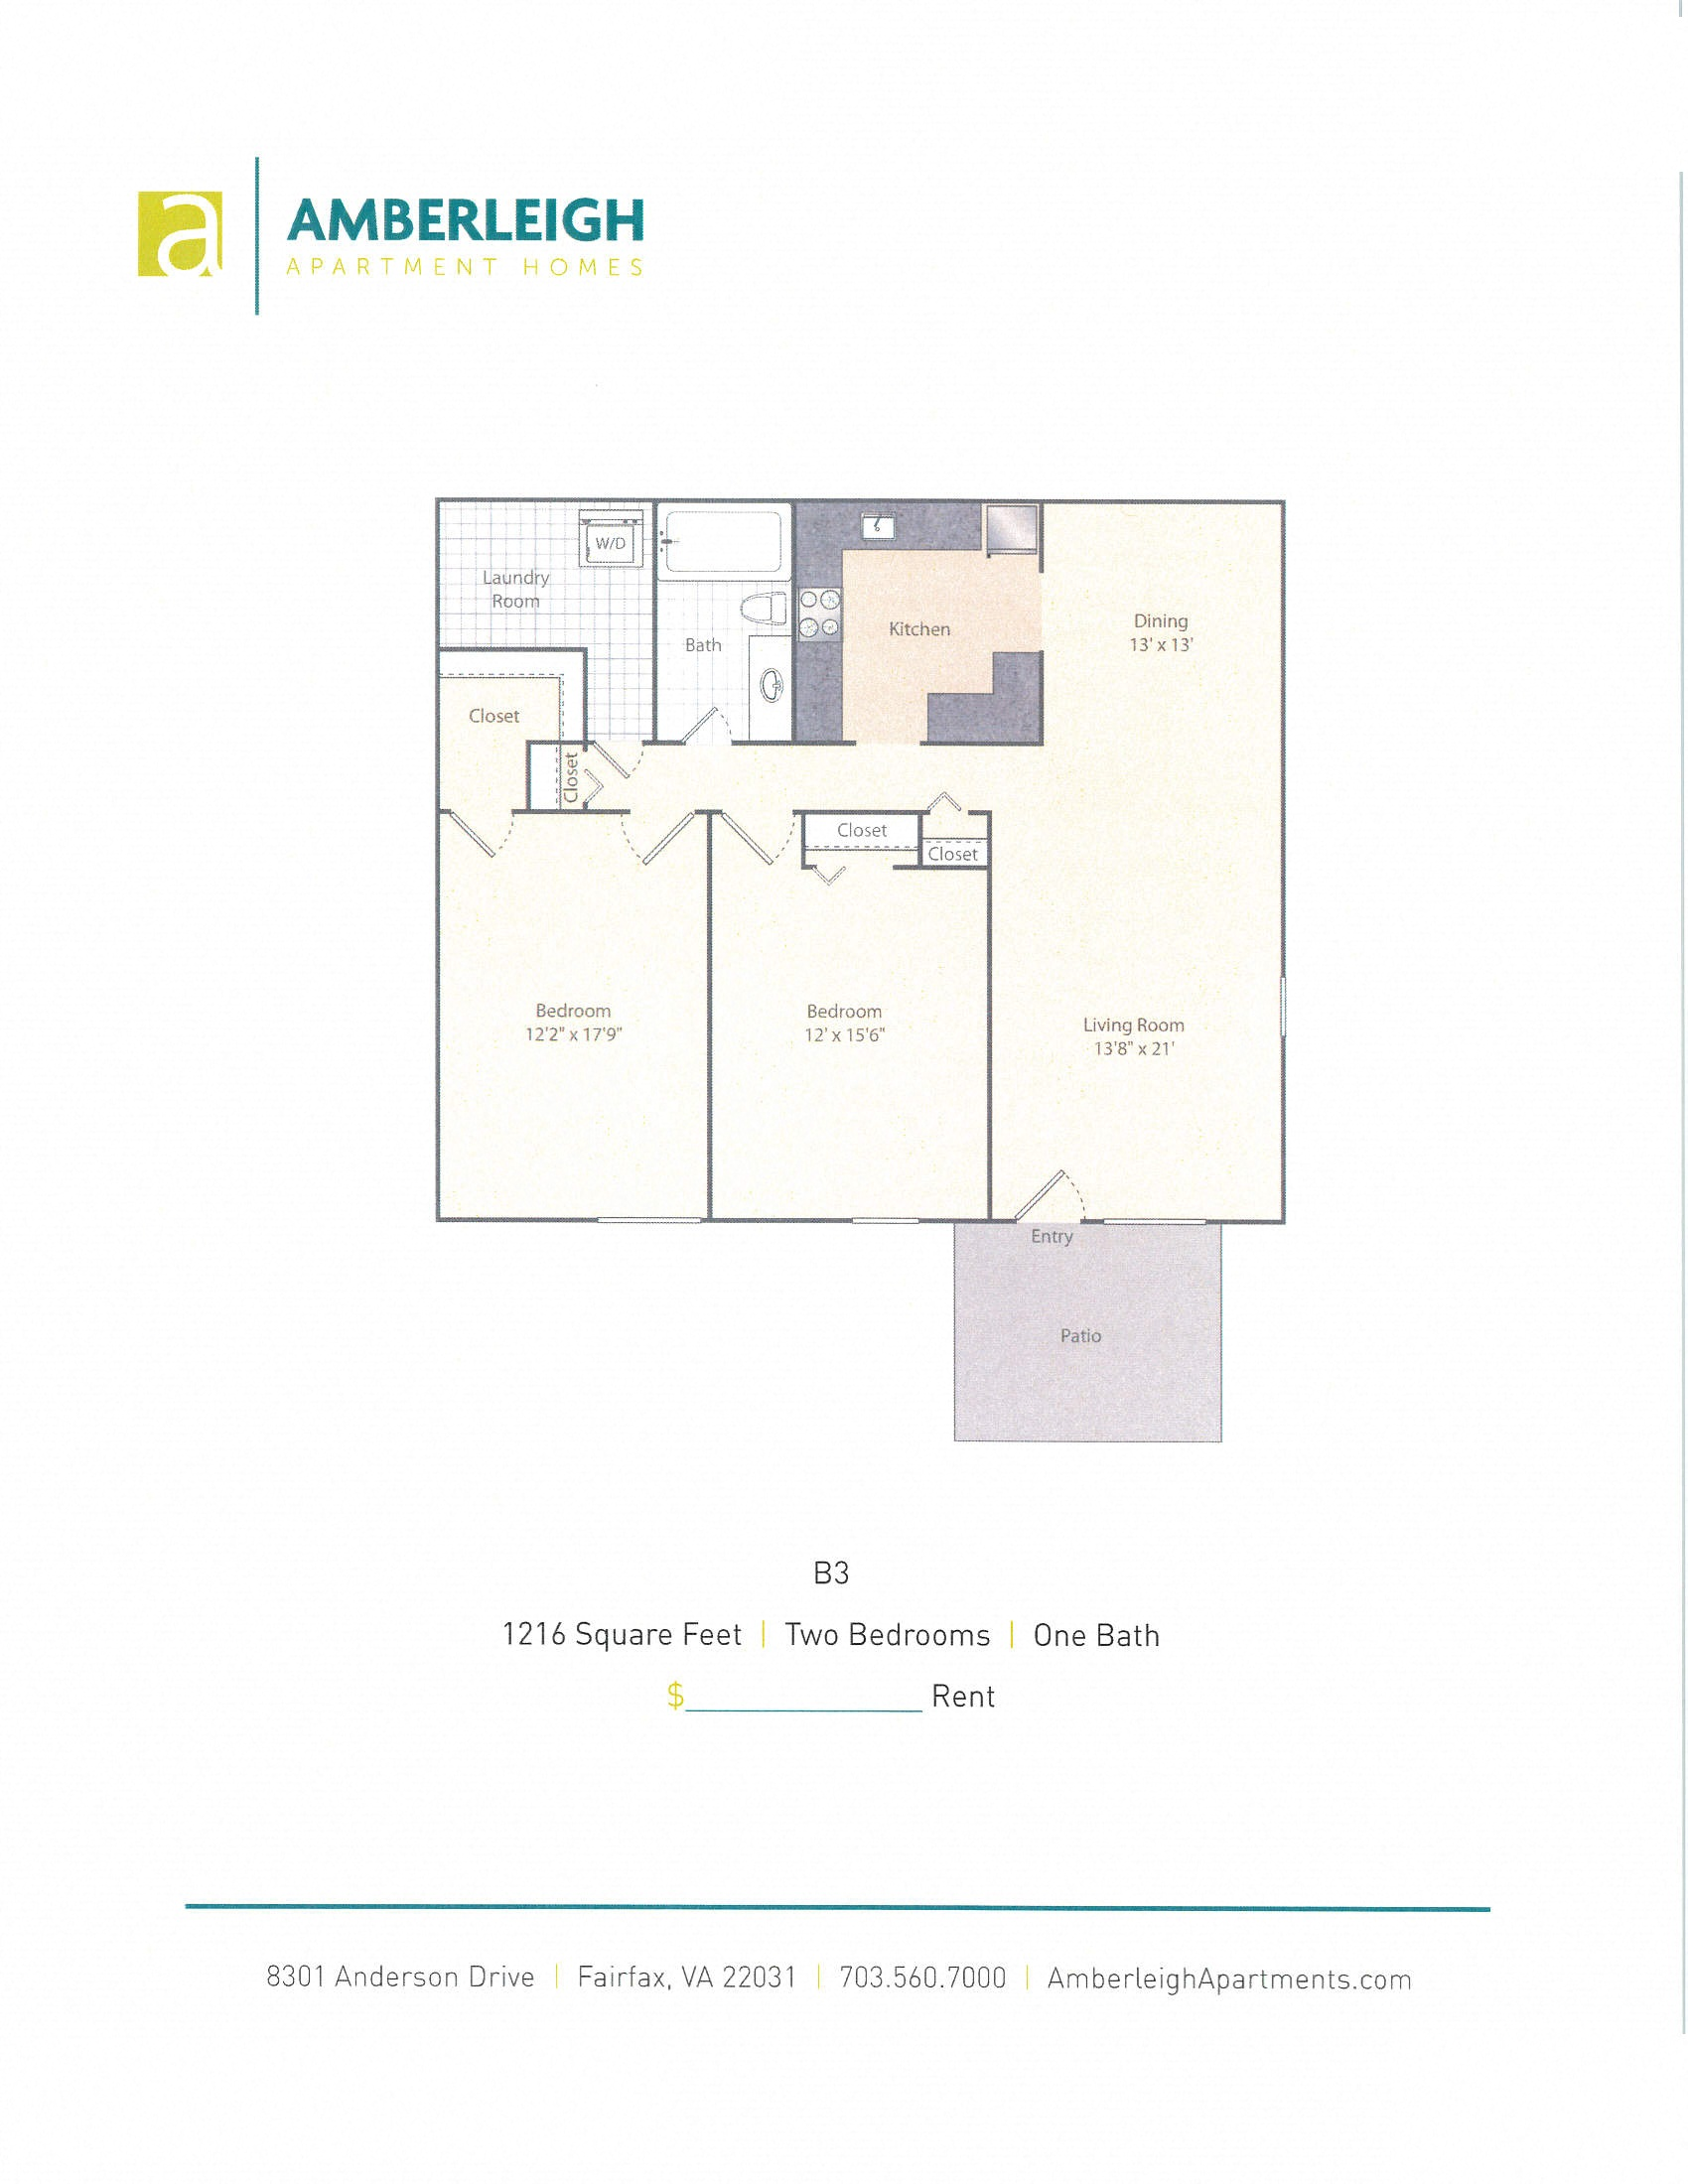 Two Bedroom, One Bath Floor Plan At Amberleigh Apartments In Fairfax,  Virginia 22031